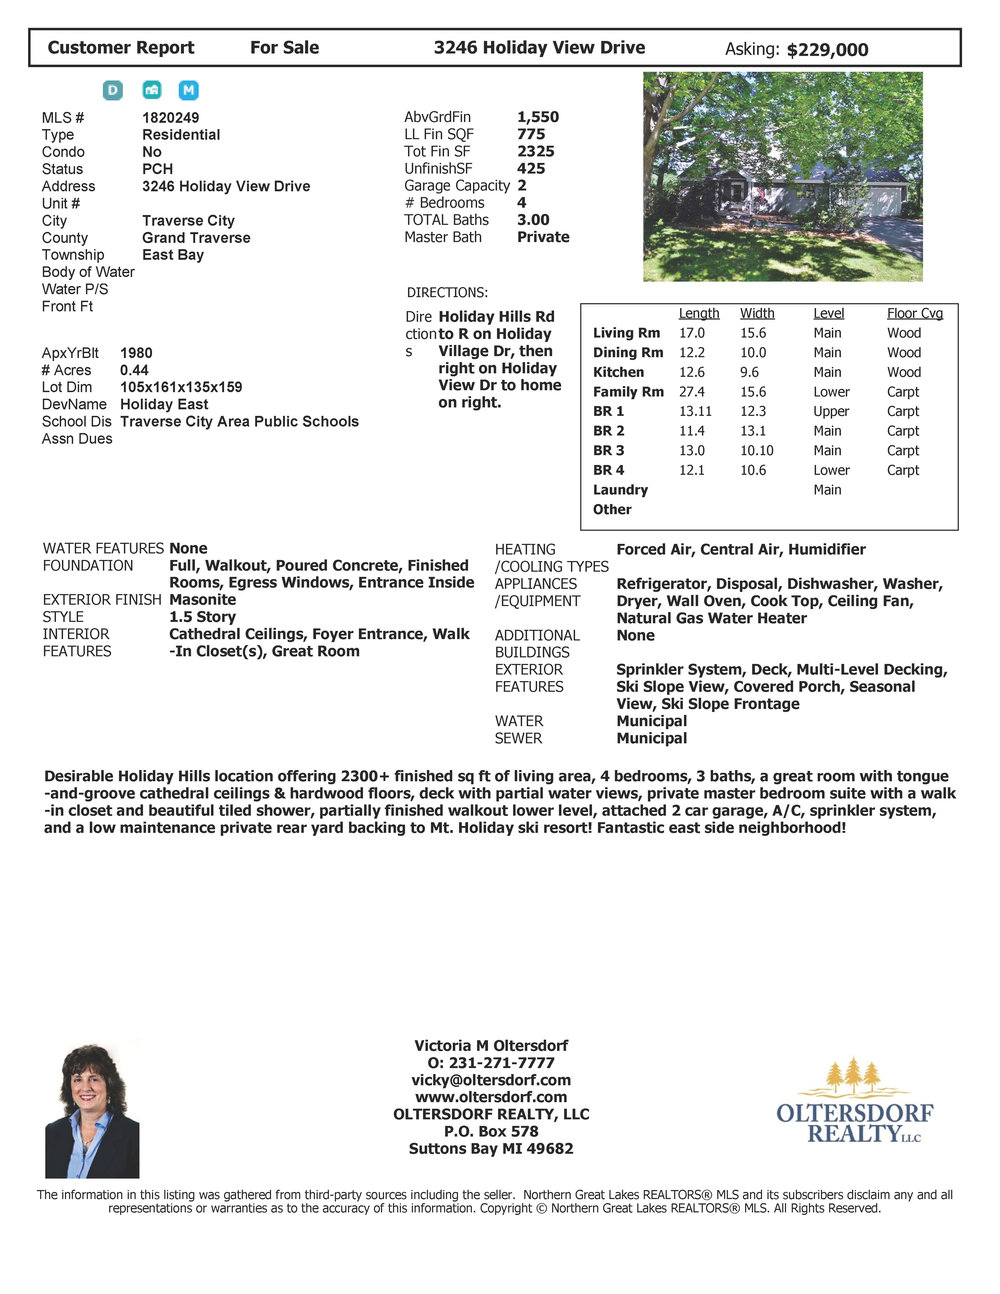 3246 Holiday View Dr, price reduced, listing for sale by Oltersdorf Realty LLC.jpg